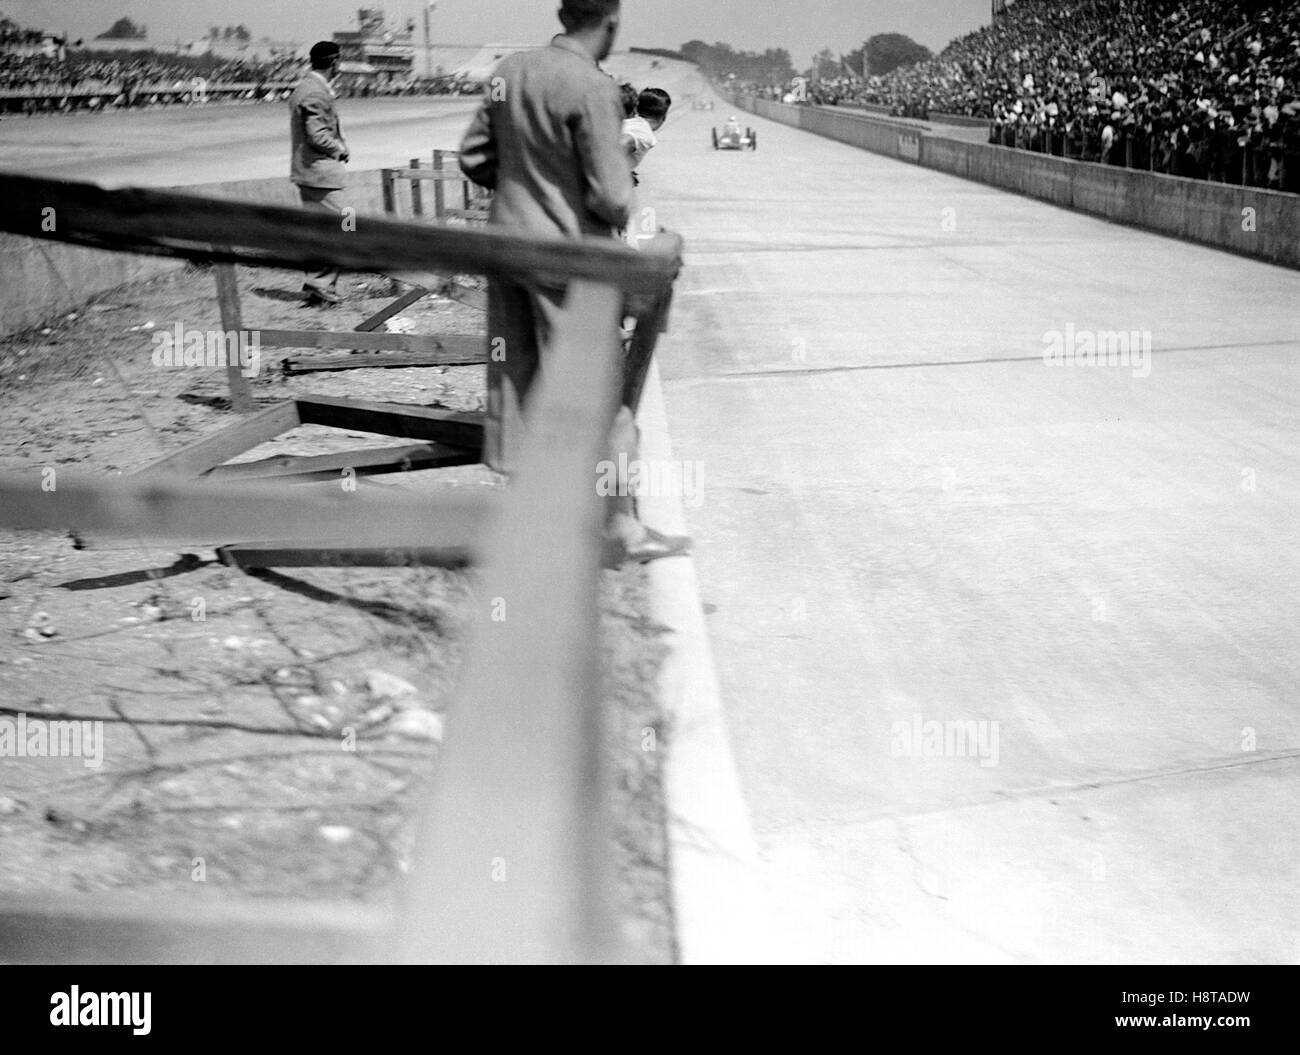 PRE WAR FRENCH GP MERCEDES LEADS - Stock Image